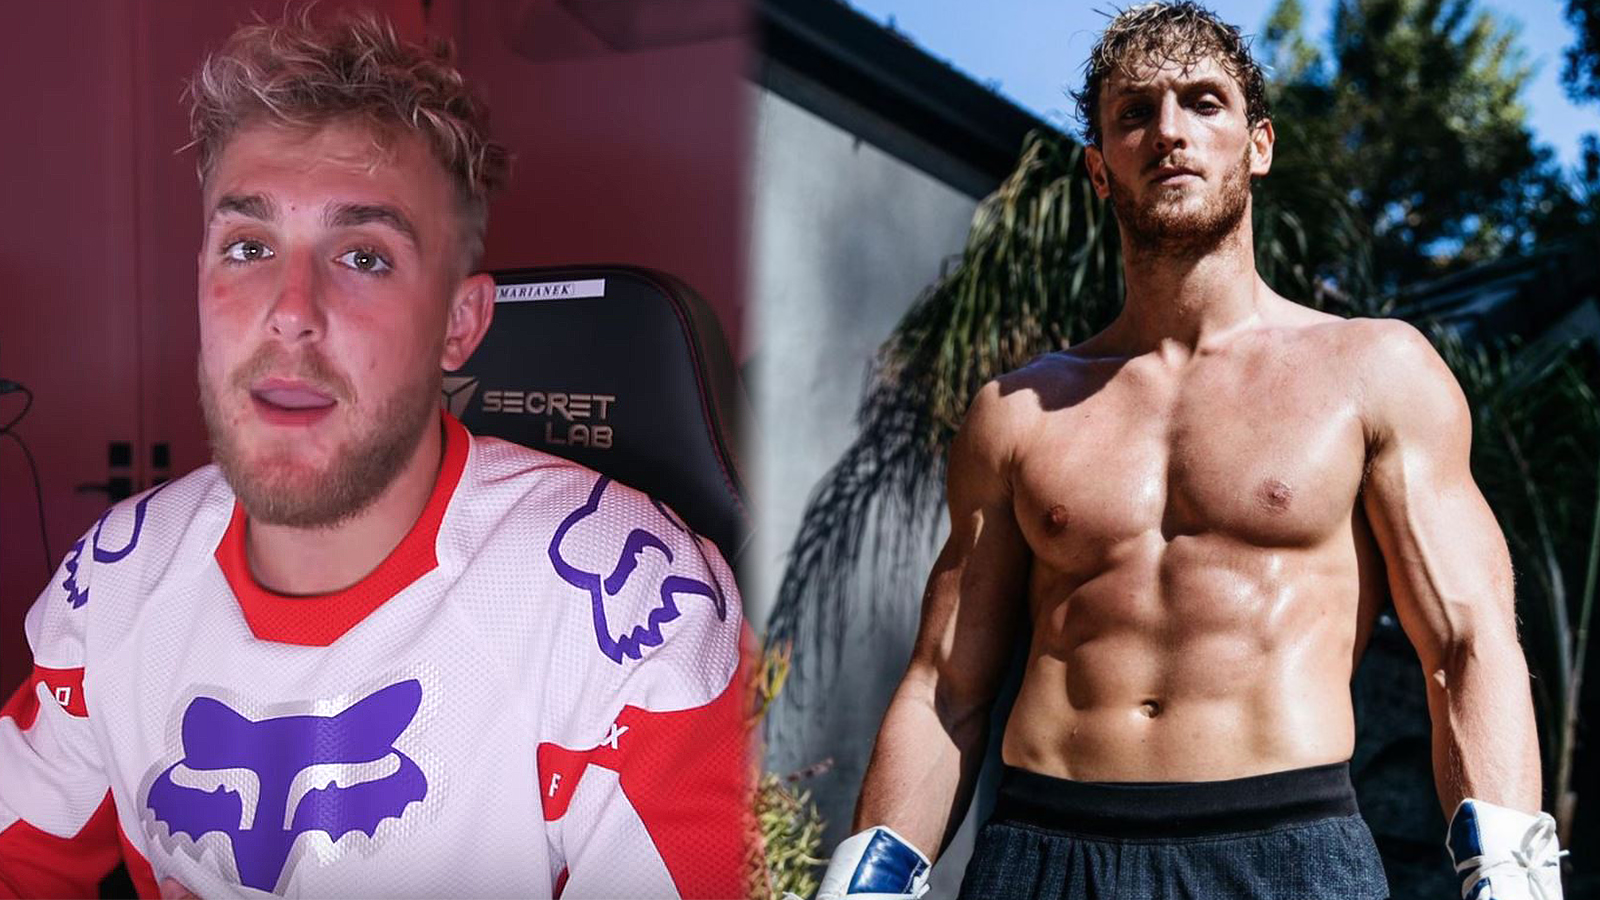 Jake Paul claims Logan Paul is a fake fighter